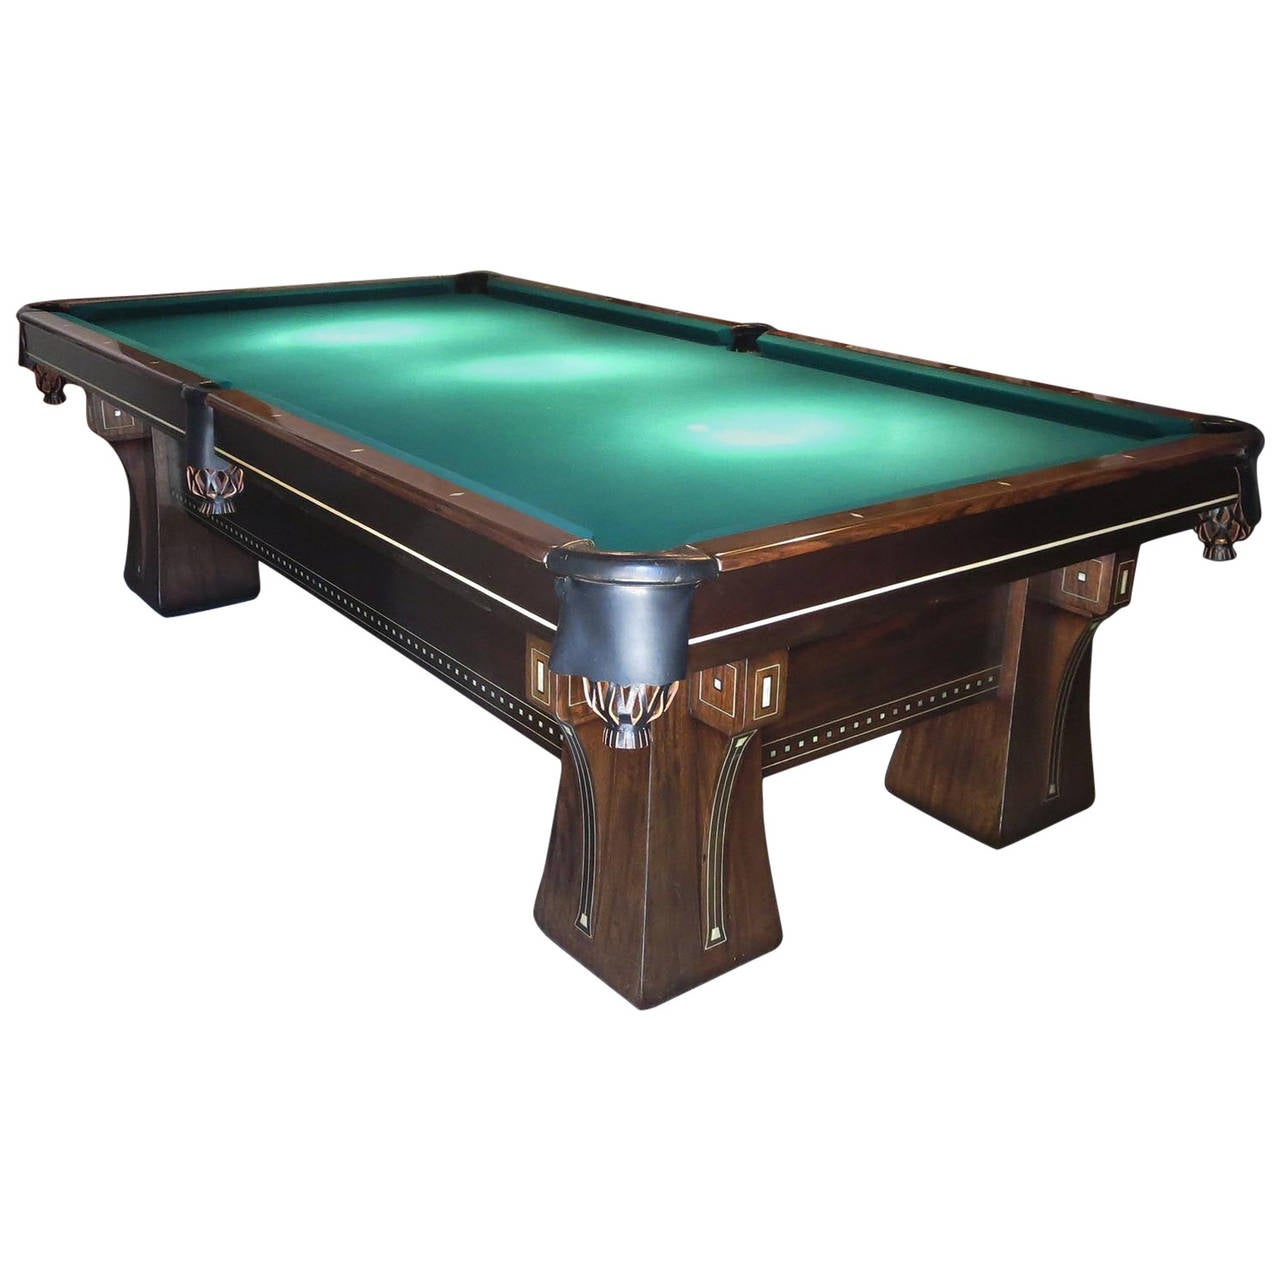 Dating brunswick pool tables